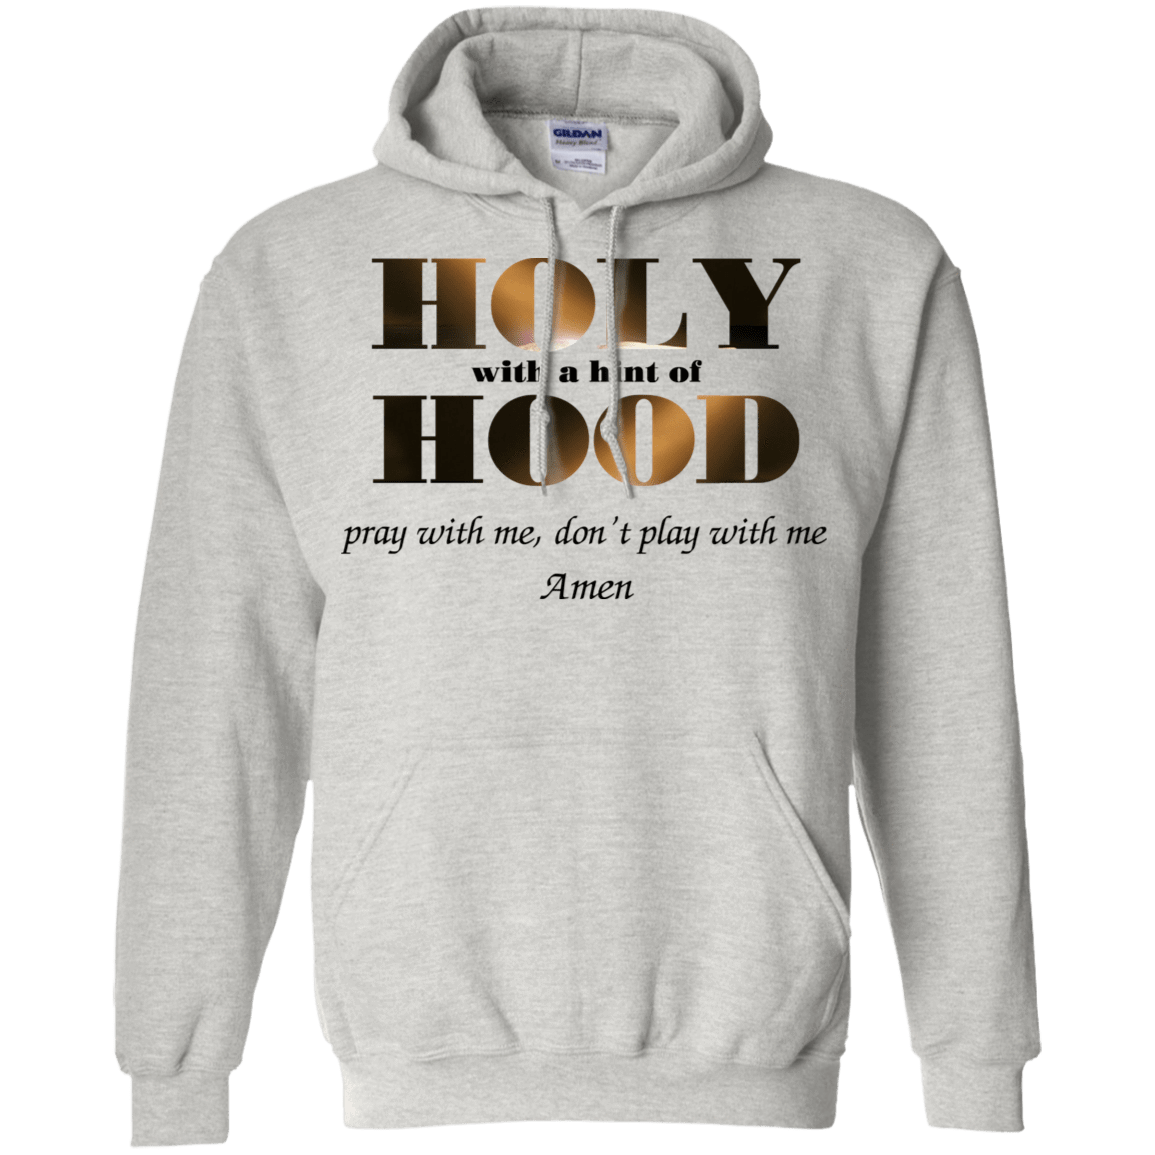 Holy With A Hint Of Hood Pray With Me Don't Play With Me Amen T-Shirts, Hoodie, Tank 541-4748-77675277-23071 - Tee Ript